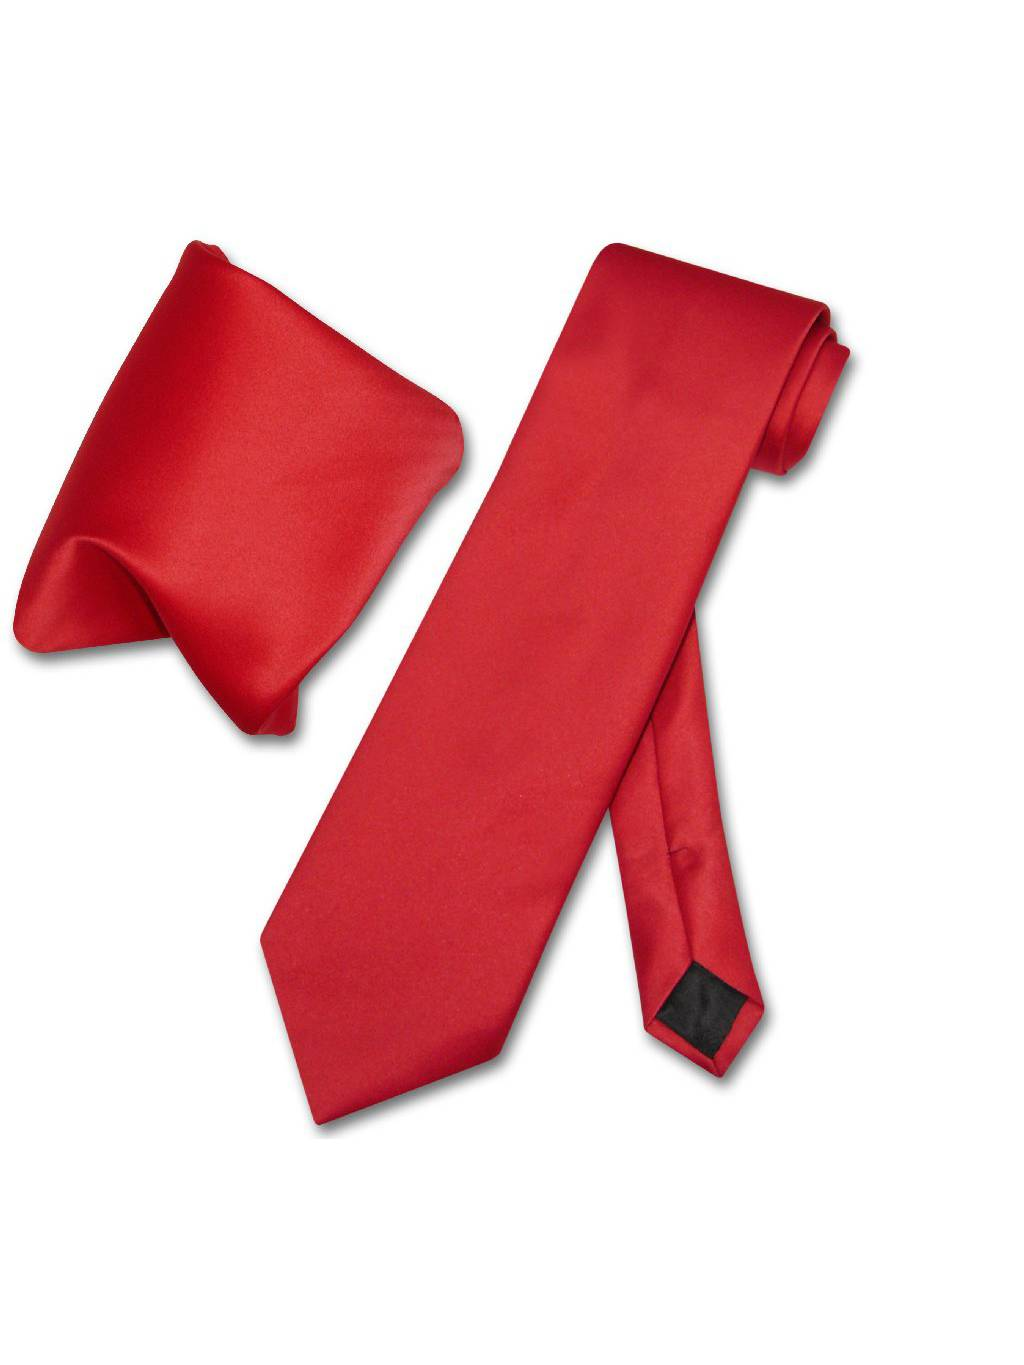 Vesuvio Napoli Solid RED Color NeckTie & Handkerchief Men's Neck Tie Set